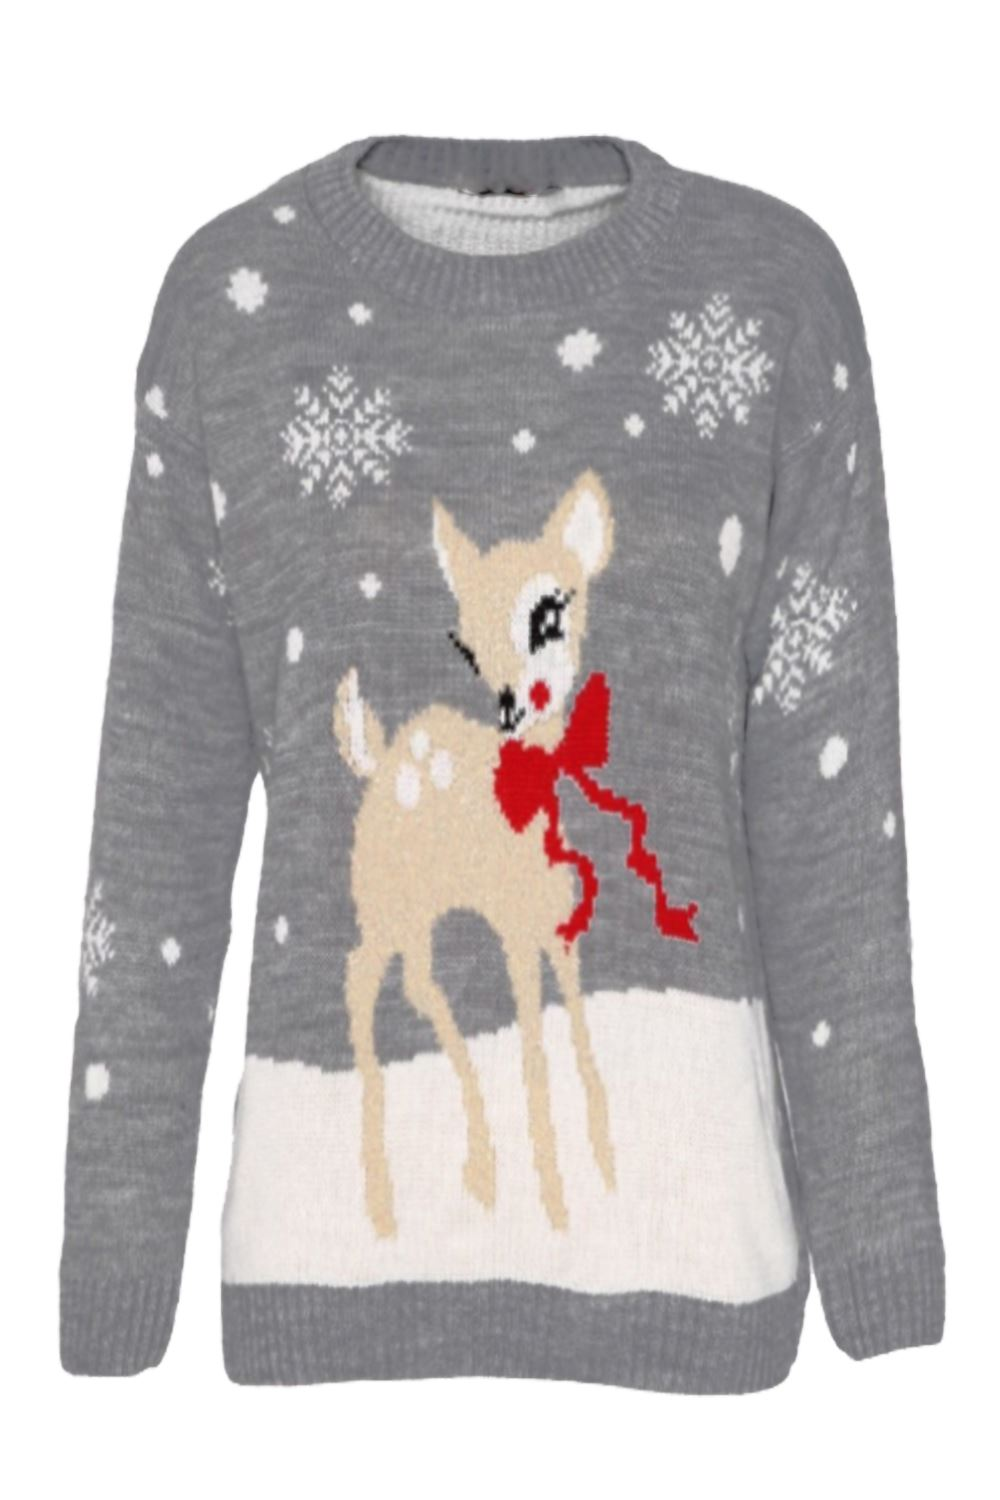 Ladies Women Novelty Xmas Reindeer & Snowflakes Christmas Knitted Sweater...